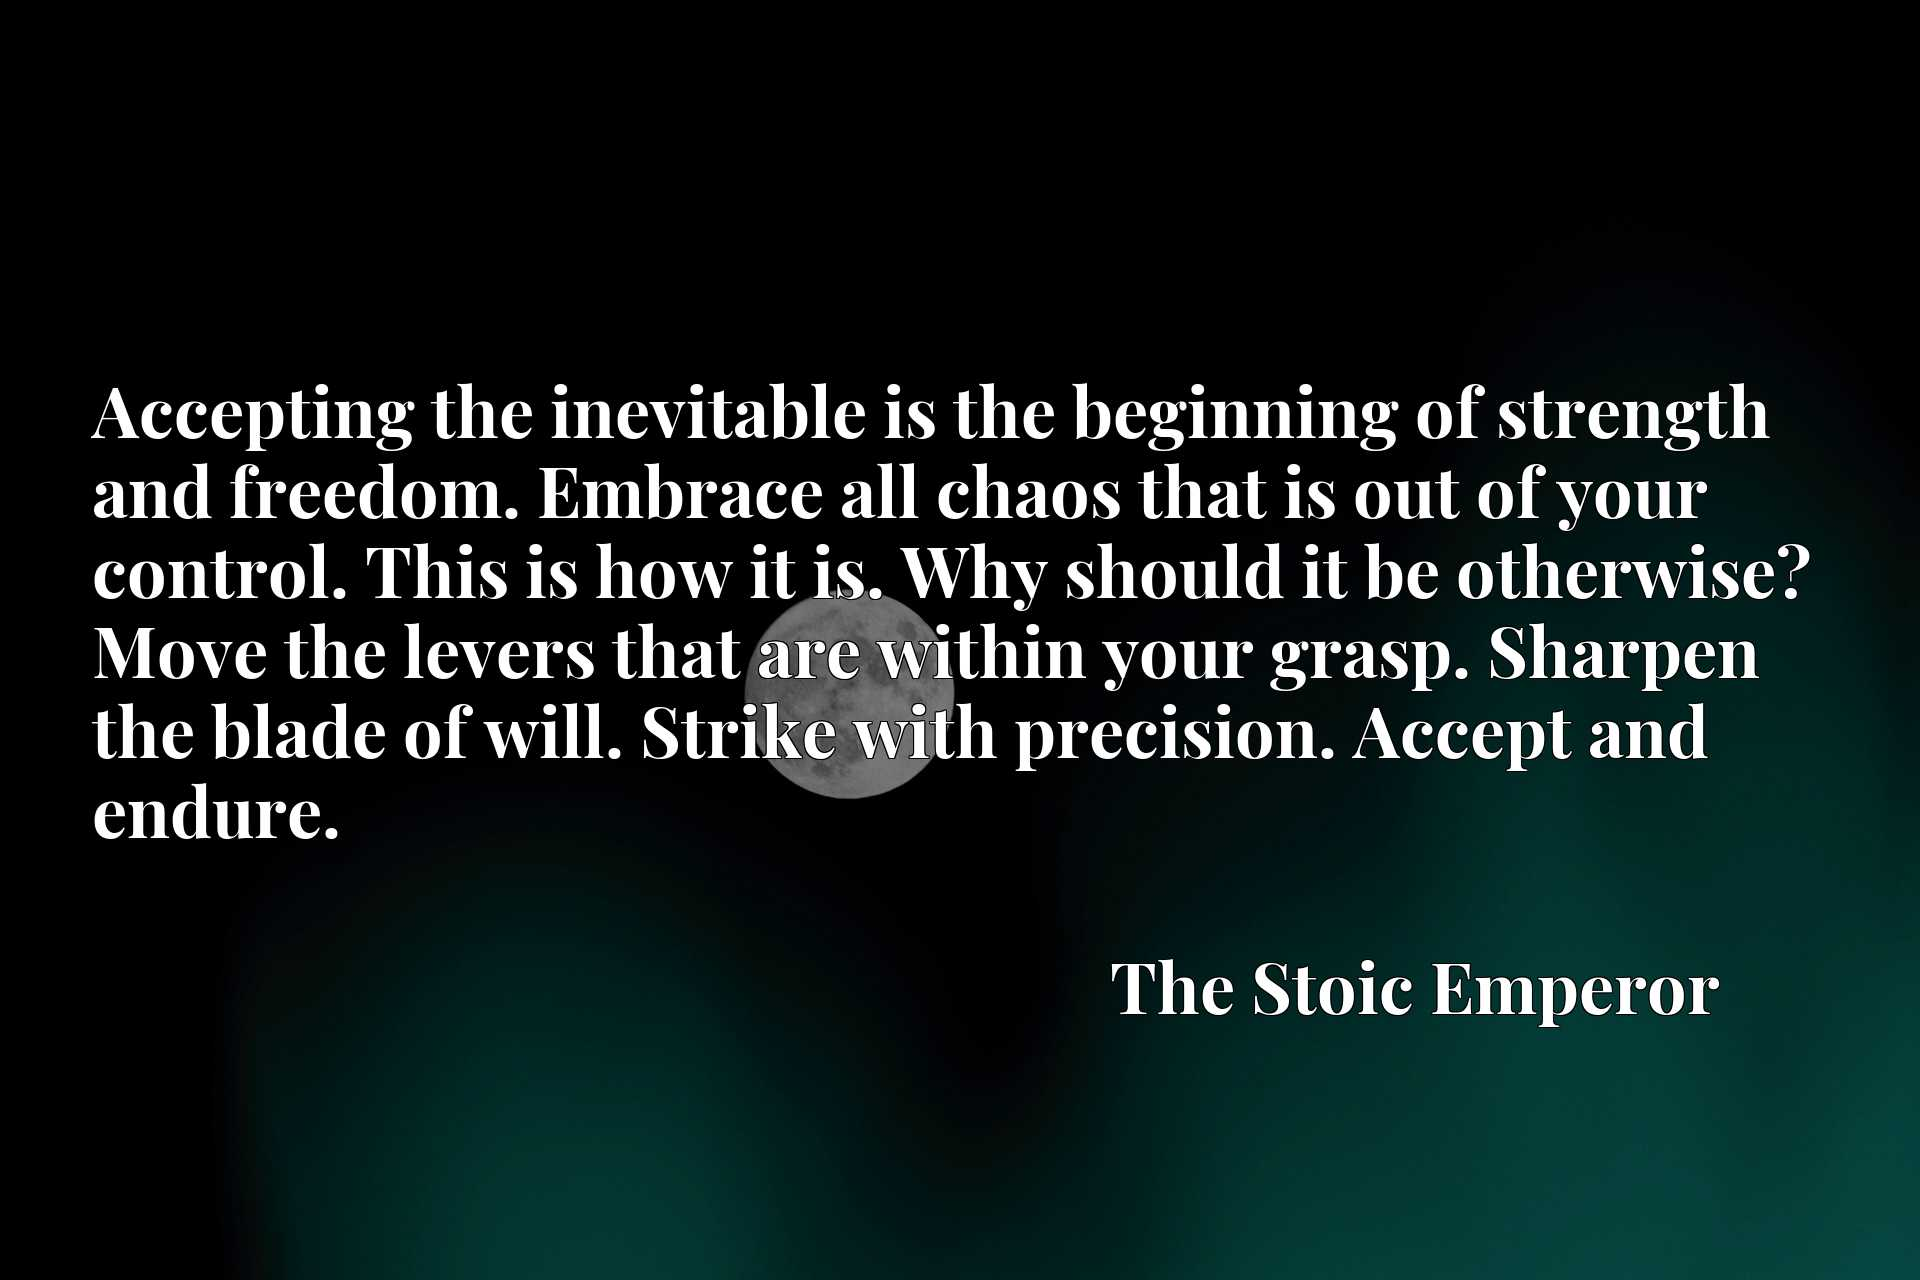 Accepting the inevitable is the beginning of strength and freedom. Embrace all chaos that is out of your control. This is how it is. Why should it be otherwise? Move the levers that are within your grasp. Sharpen the blade of will. Strike with precision. Accept and endure.